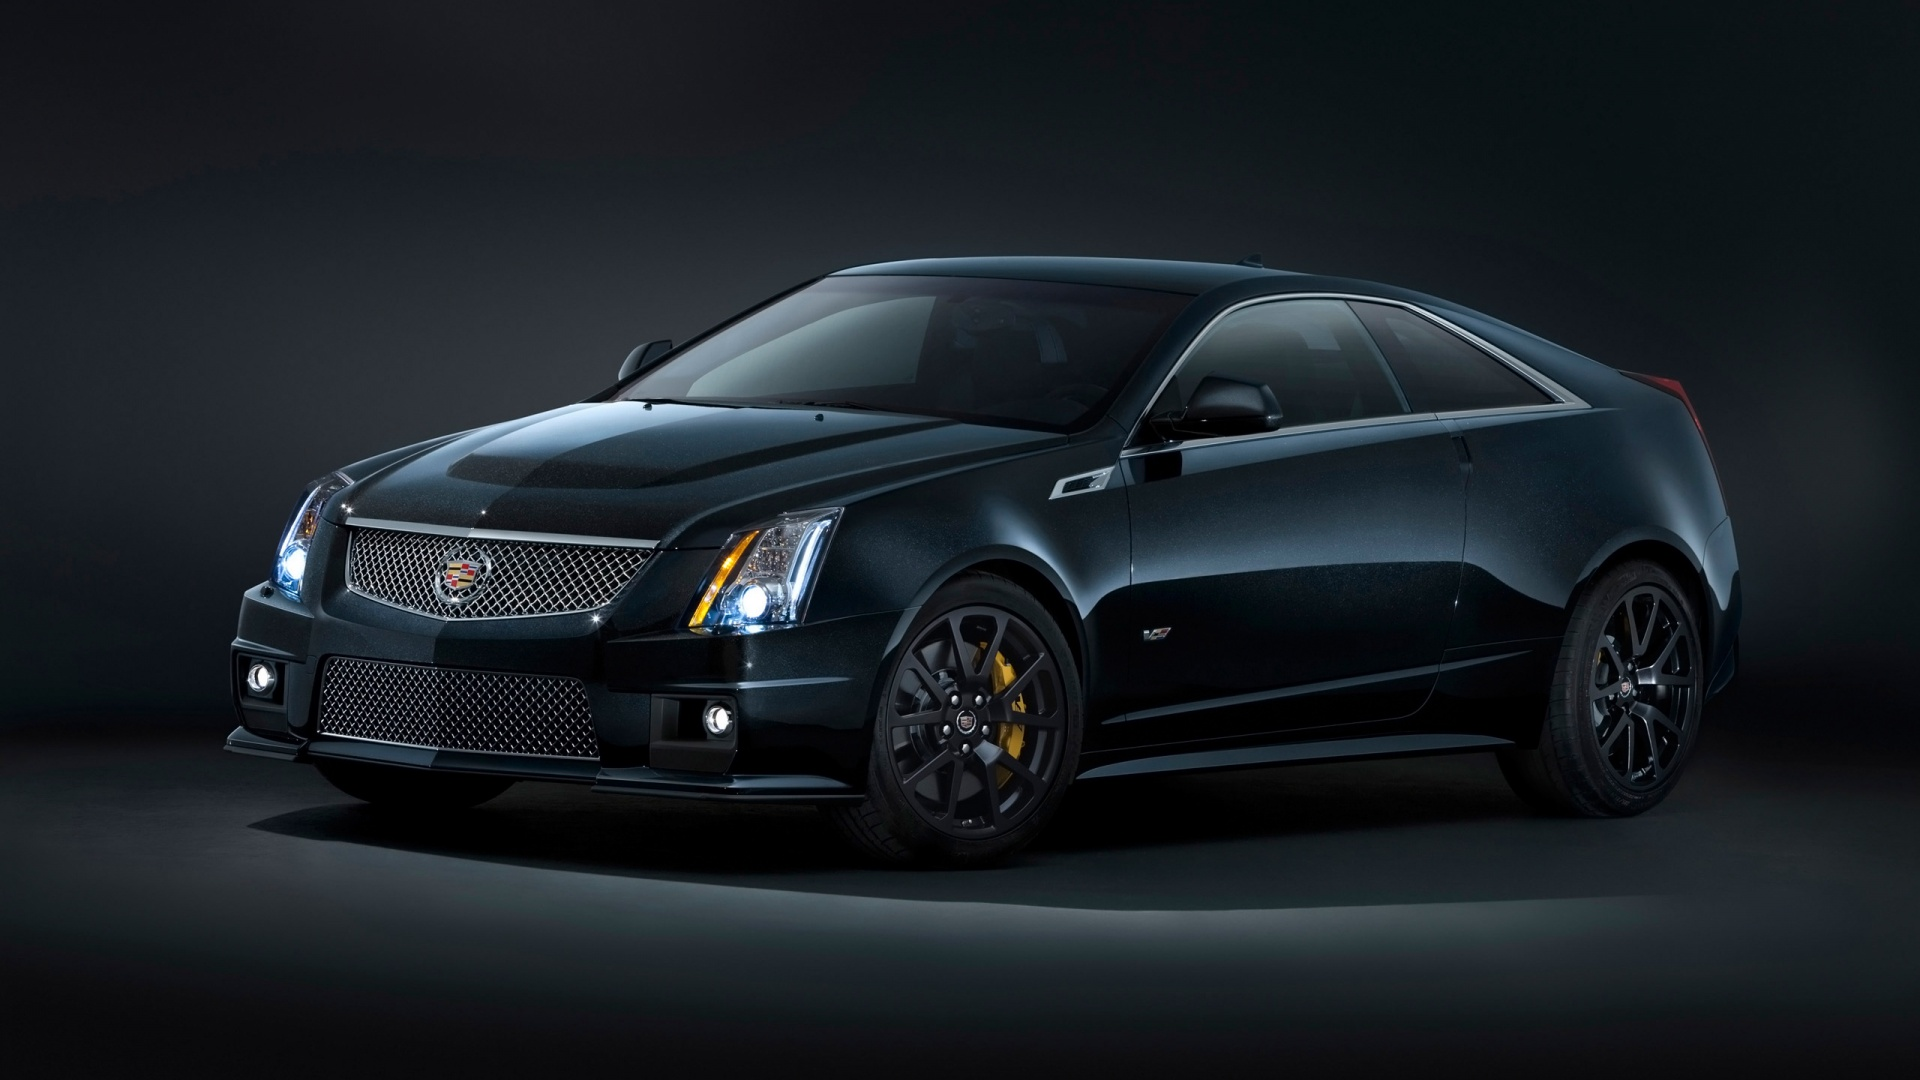 cts sale drive salute a last cadillac to smoking final the tire wagon v for